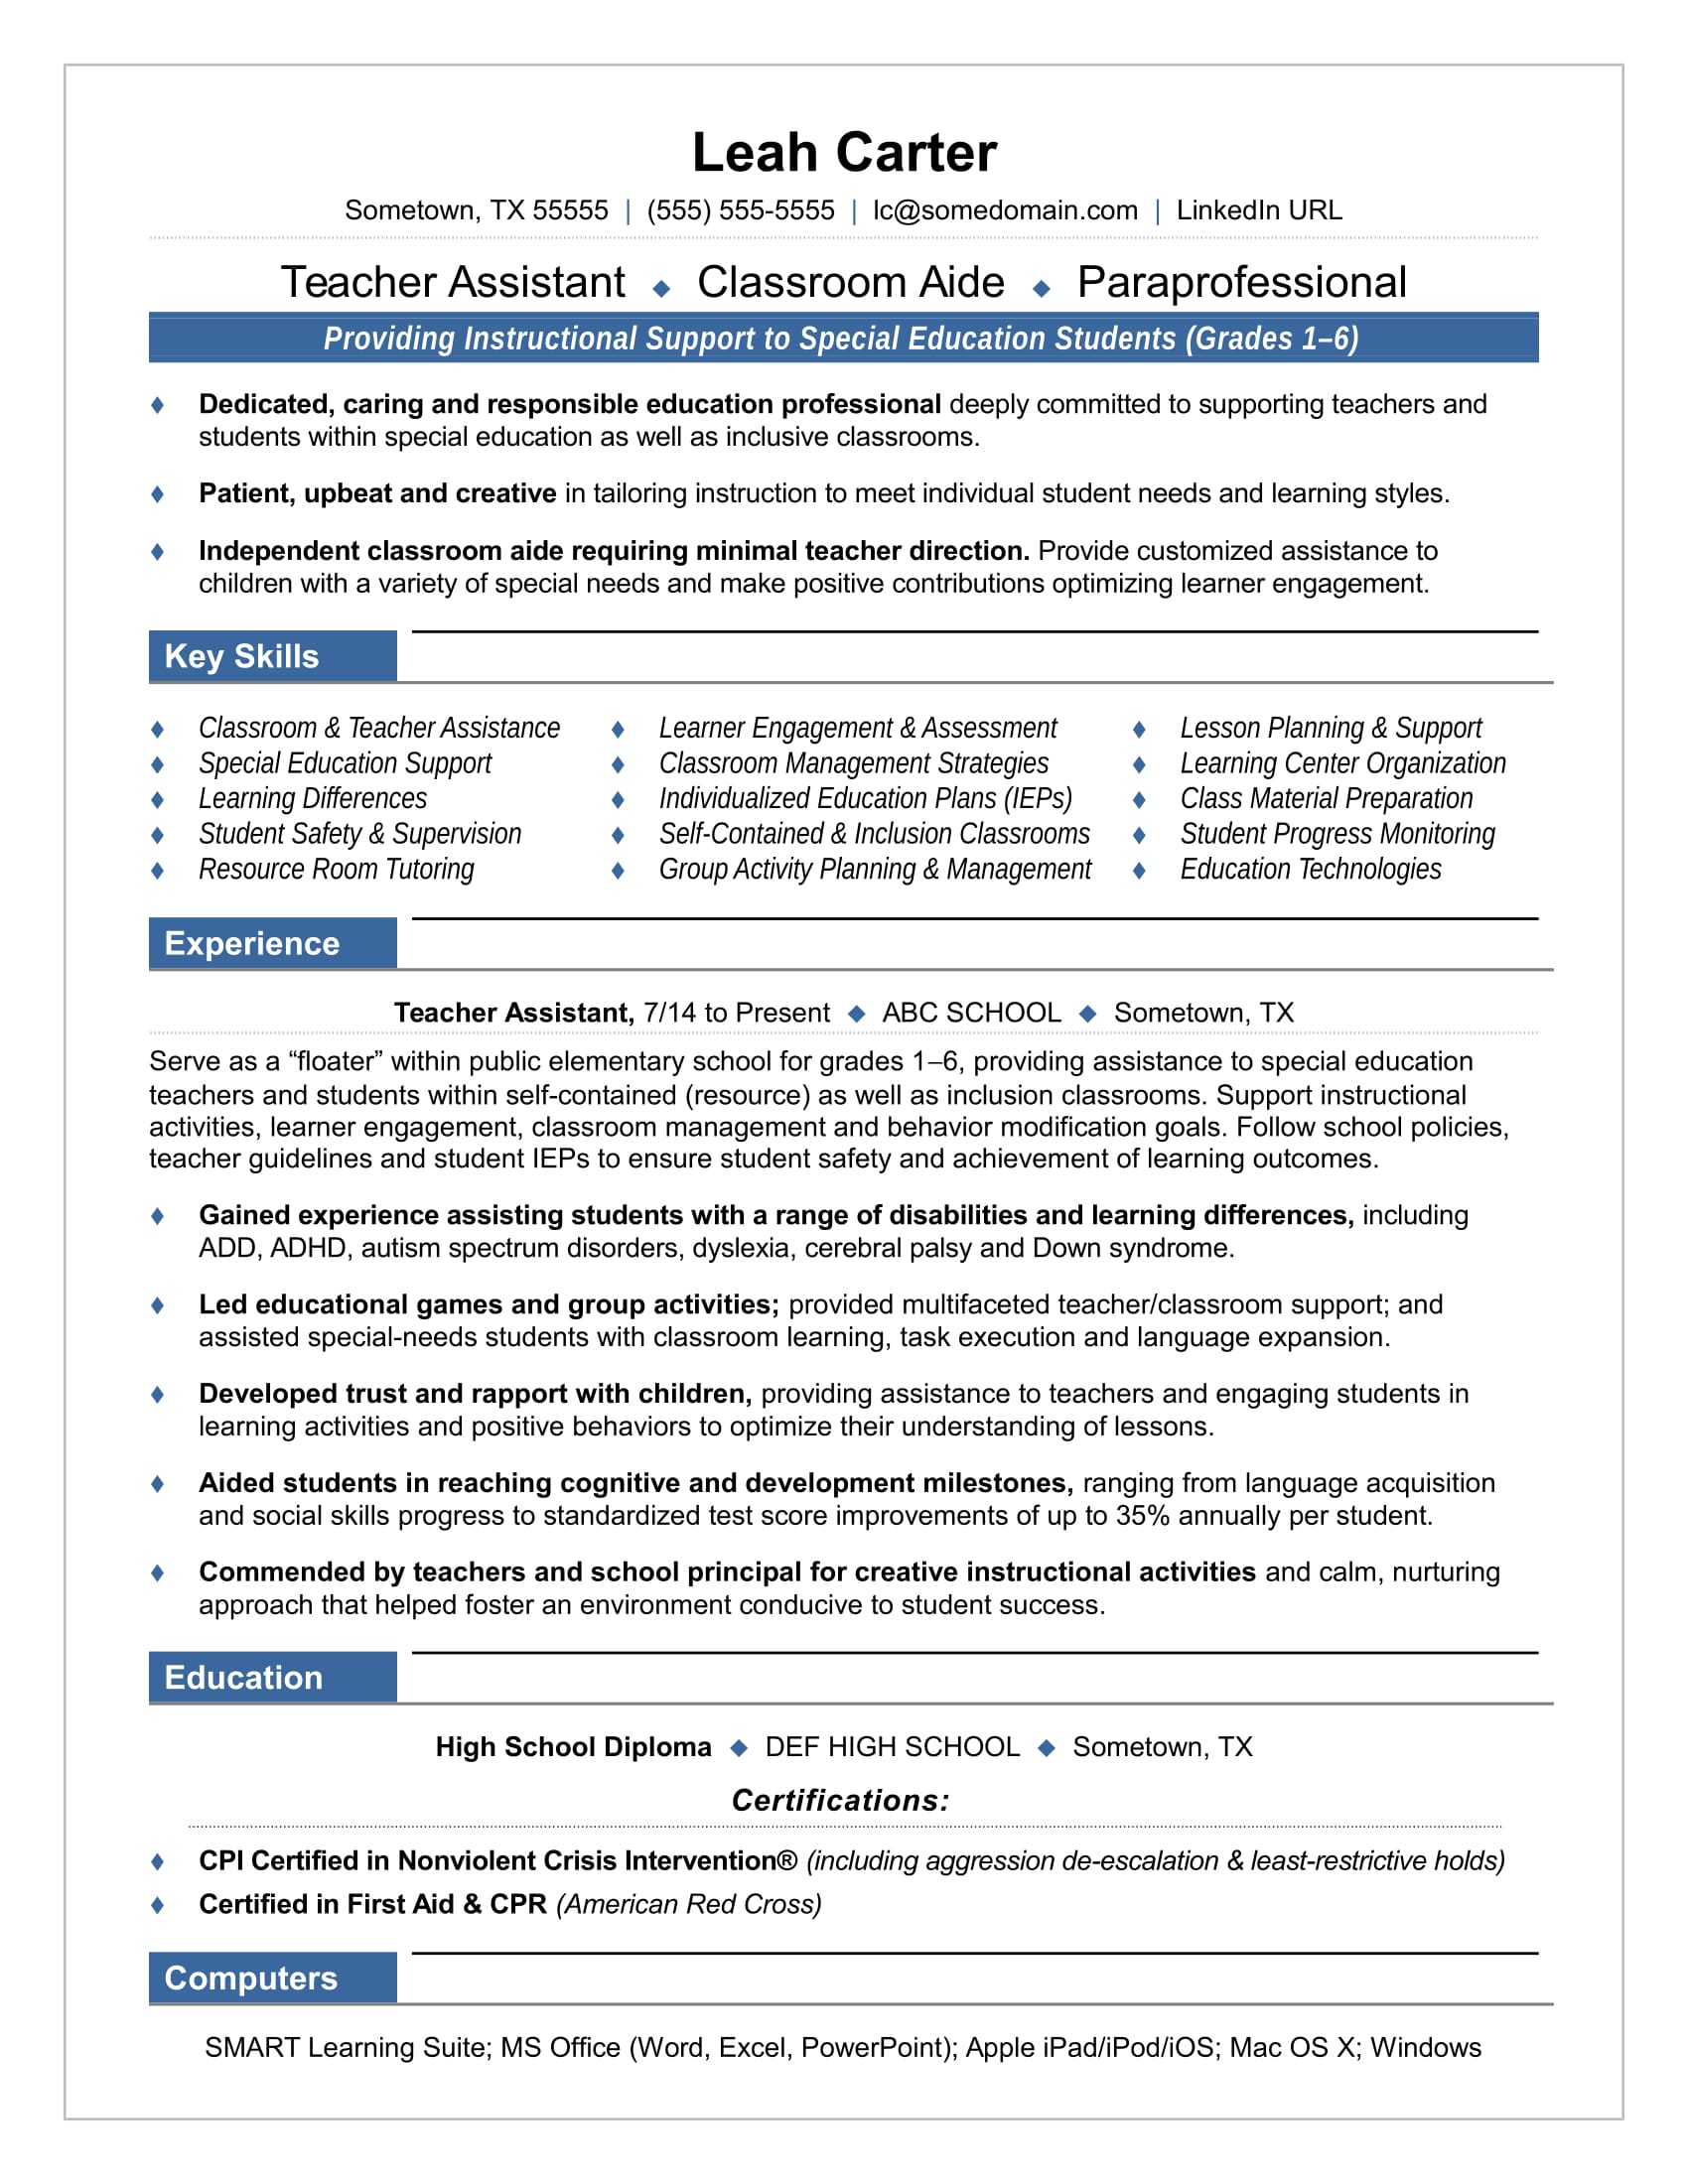 teacher assistant resume sample monster objective teacherassistant heavy equipment Resume Teacher Assistant Resume Objective